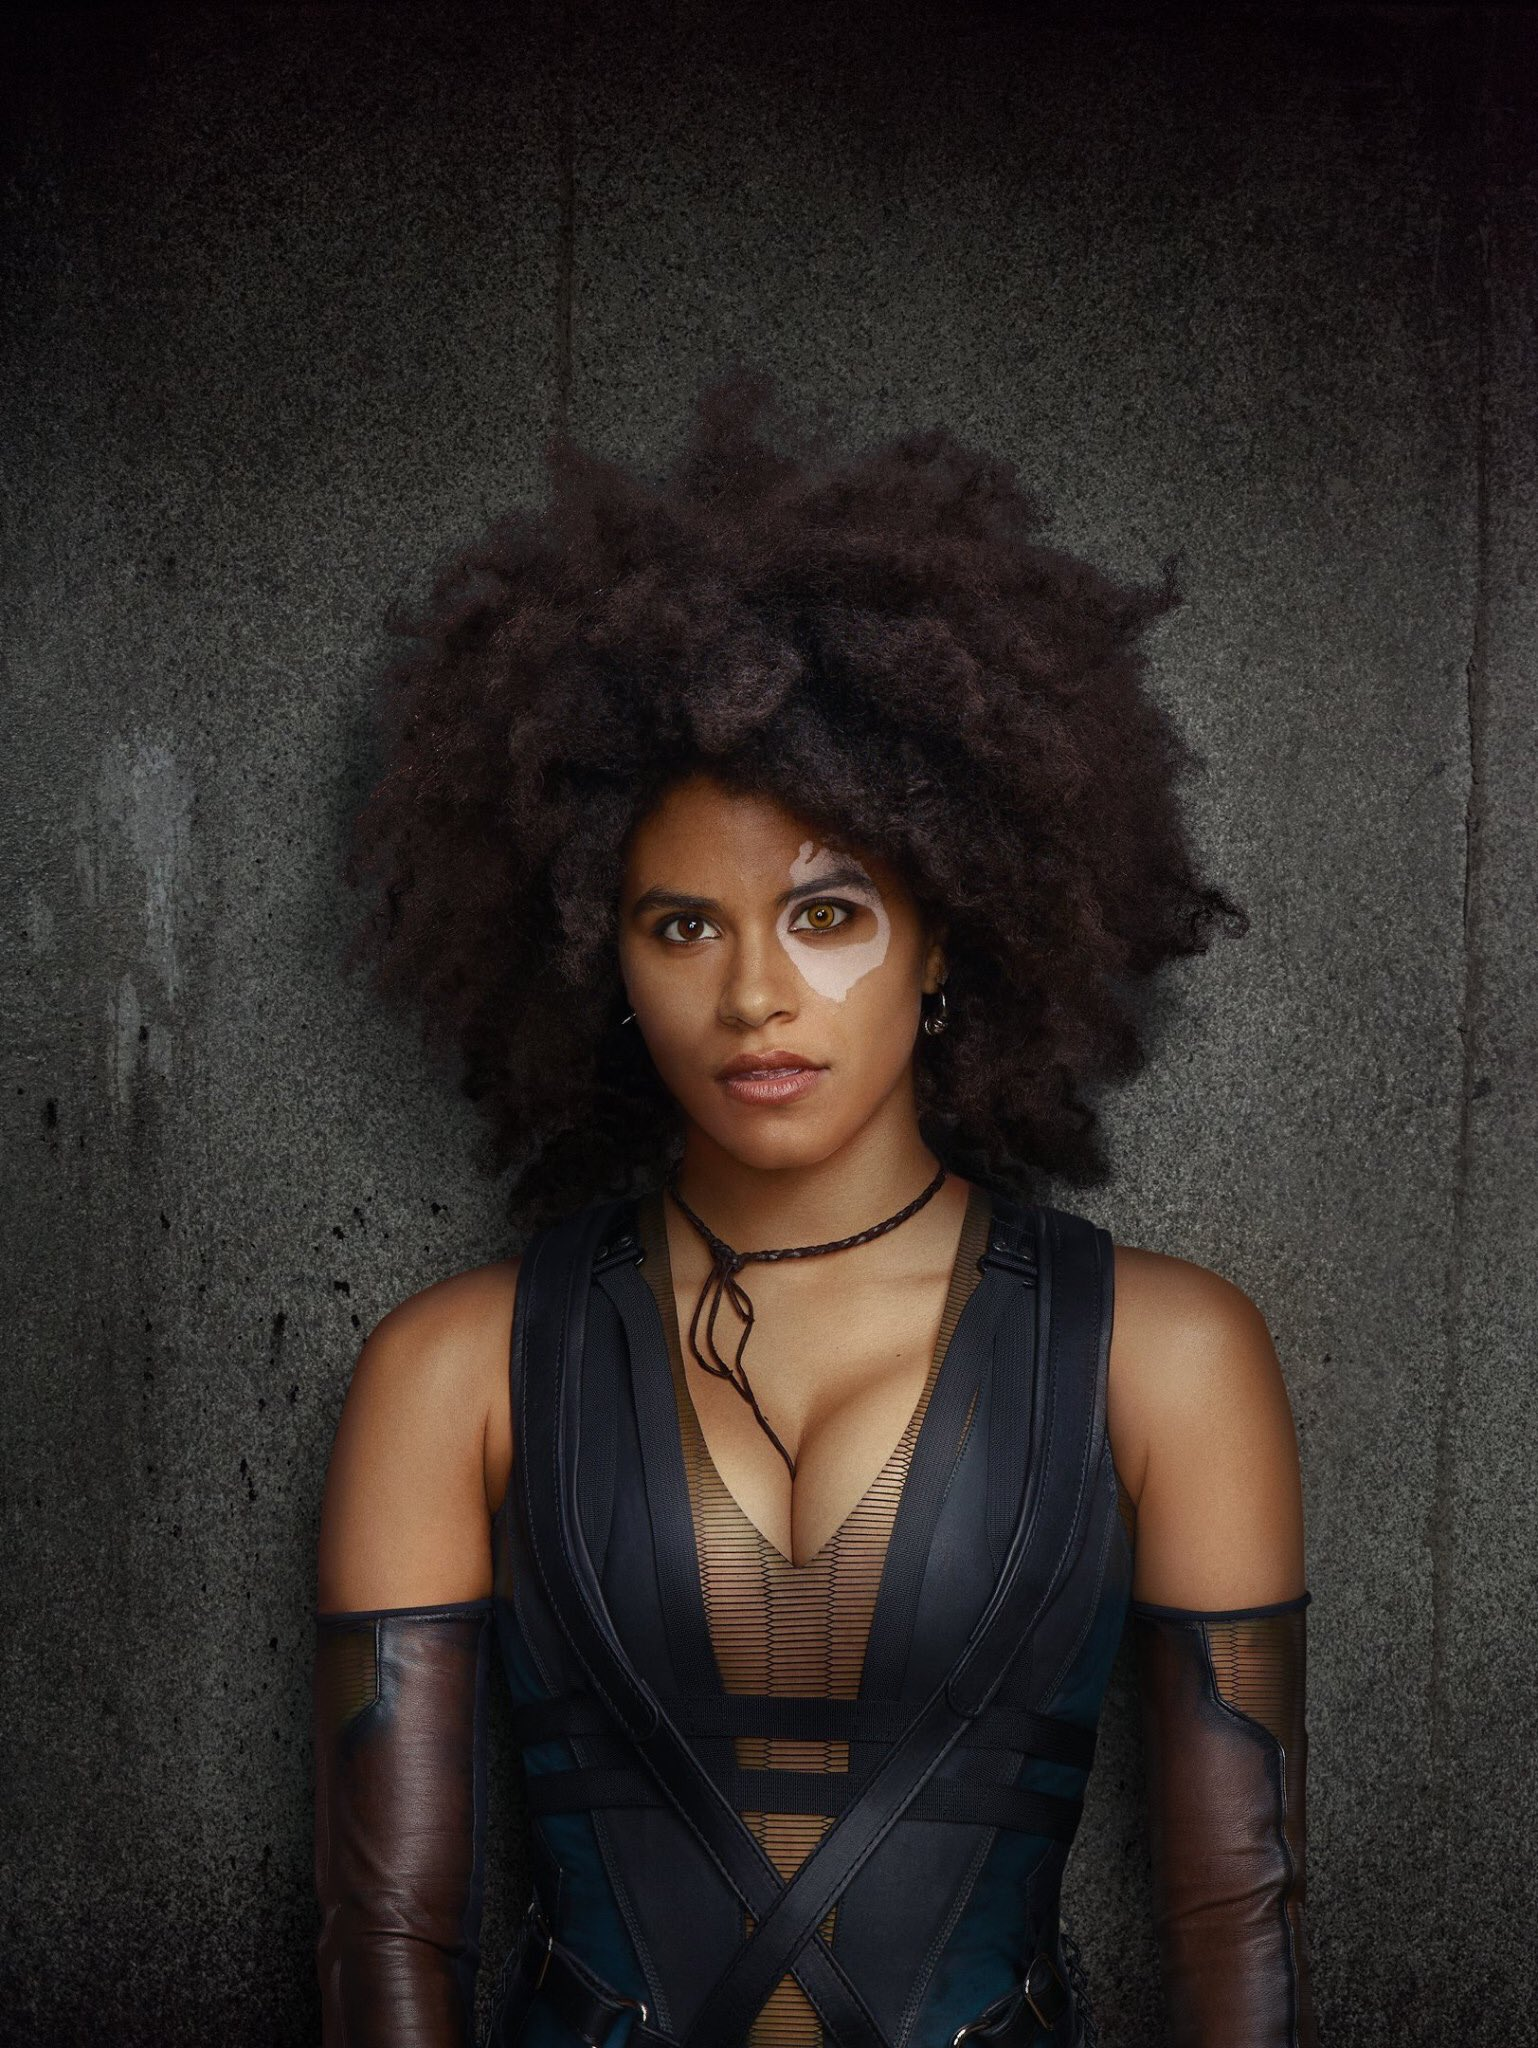 New Deadpool 2 Image Gives Us A Better Look At Domino